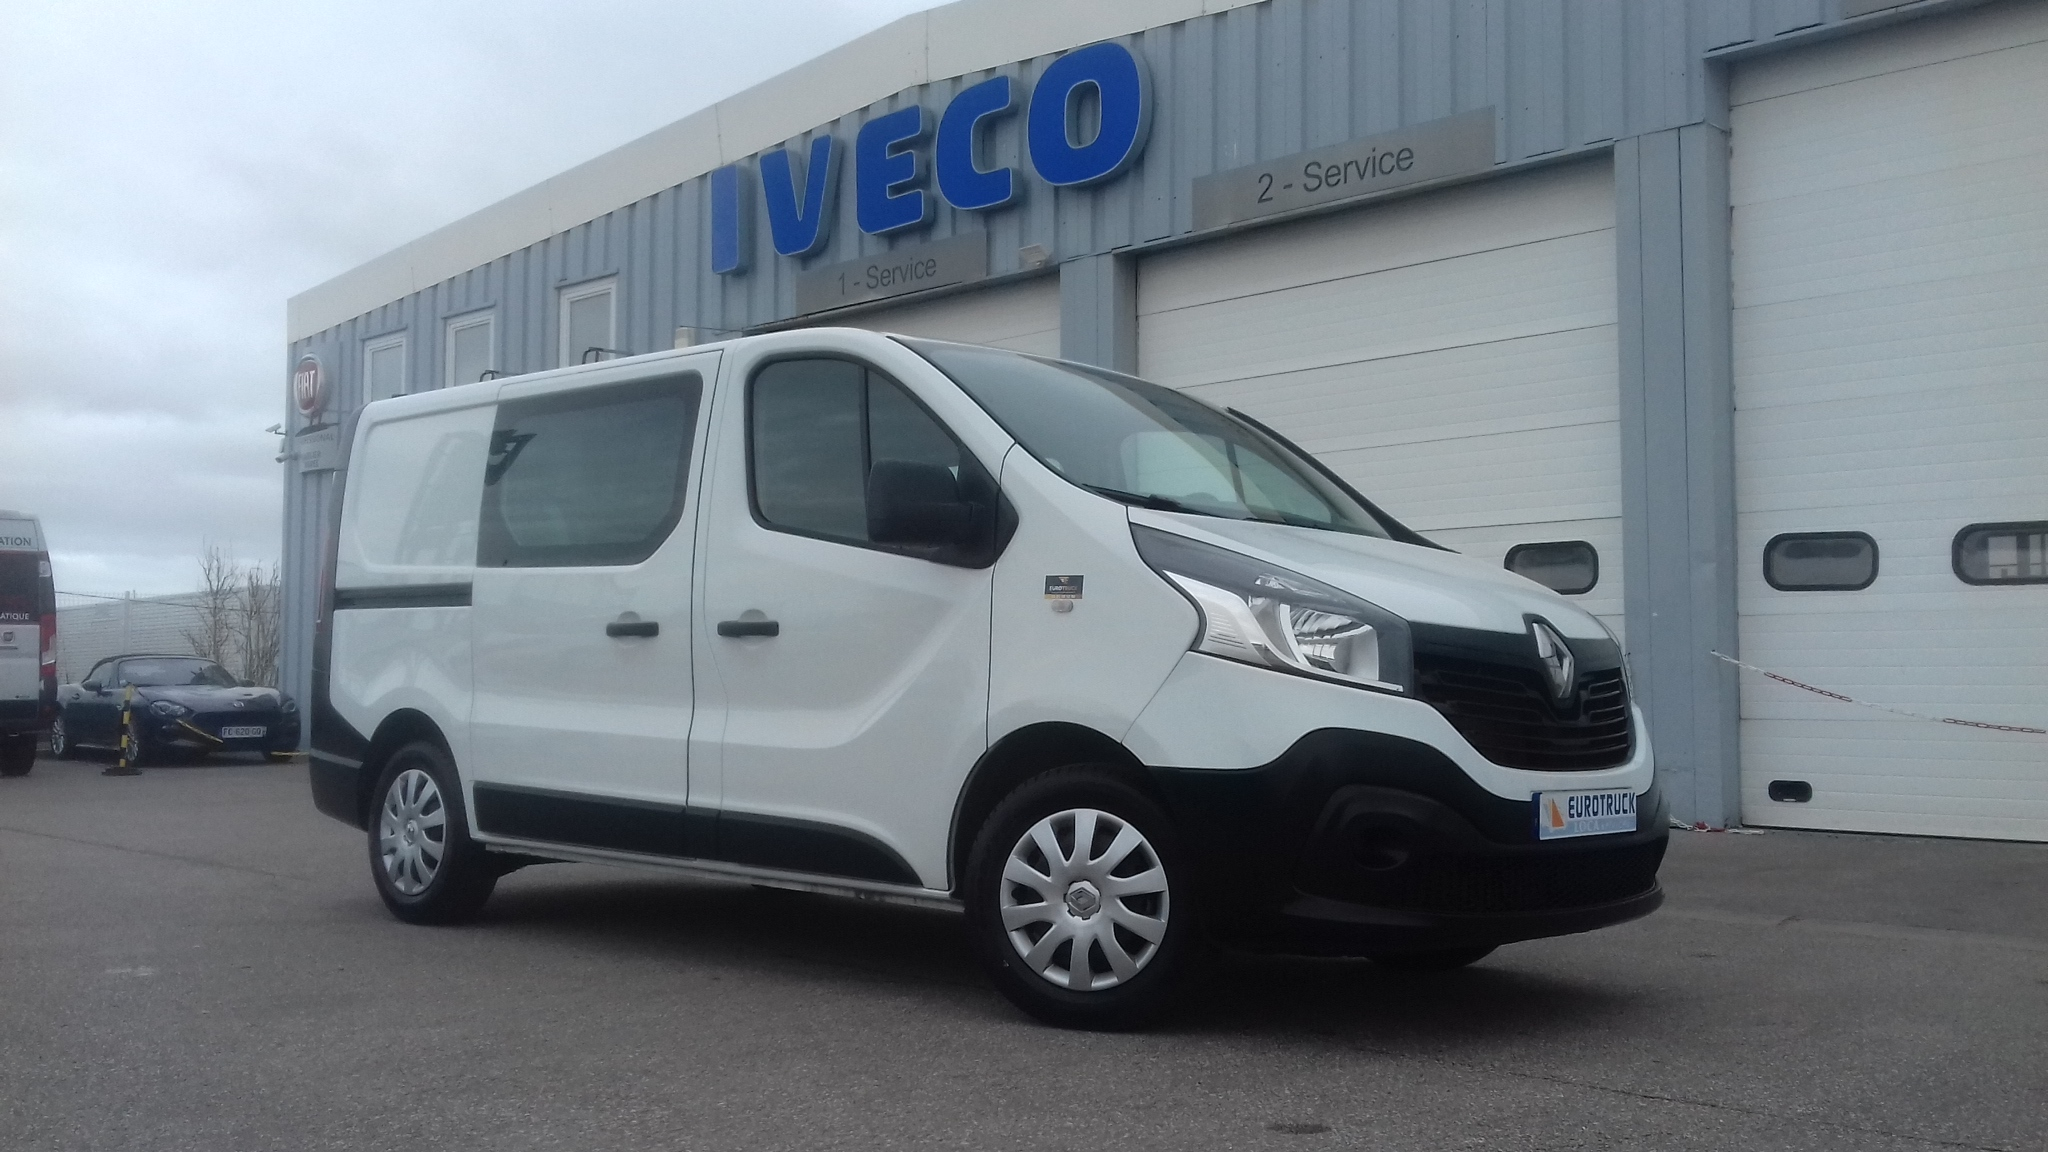 RENAULT TRAFIC 9 450KM SEULEMENT